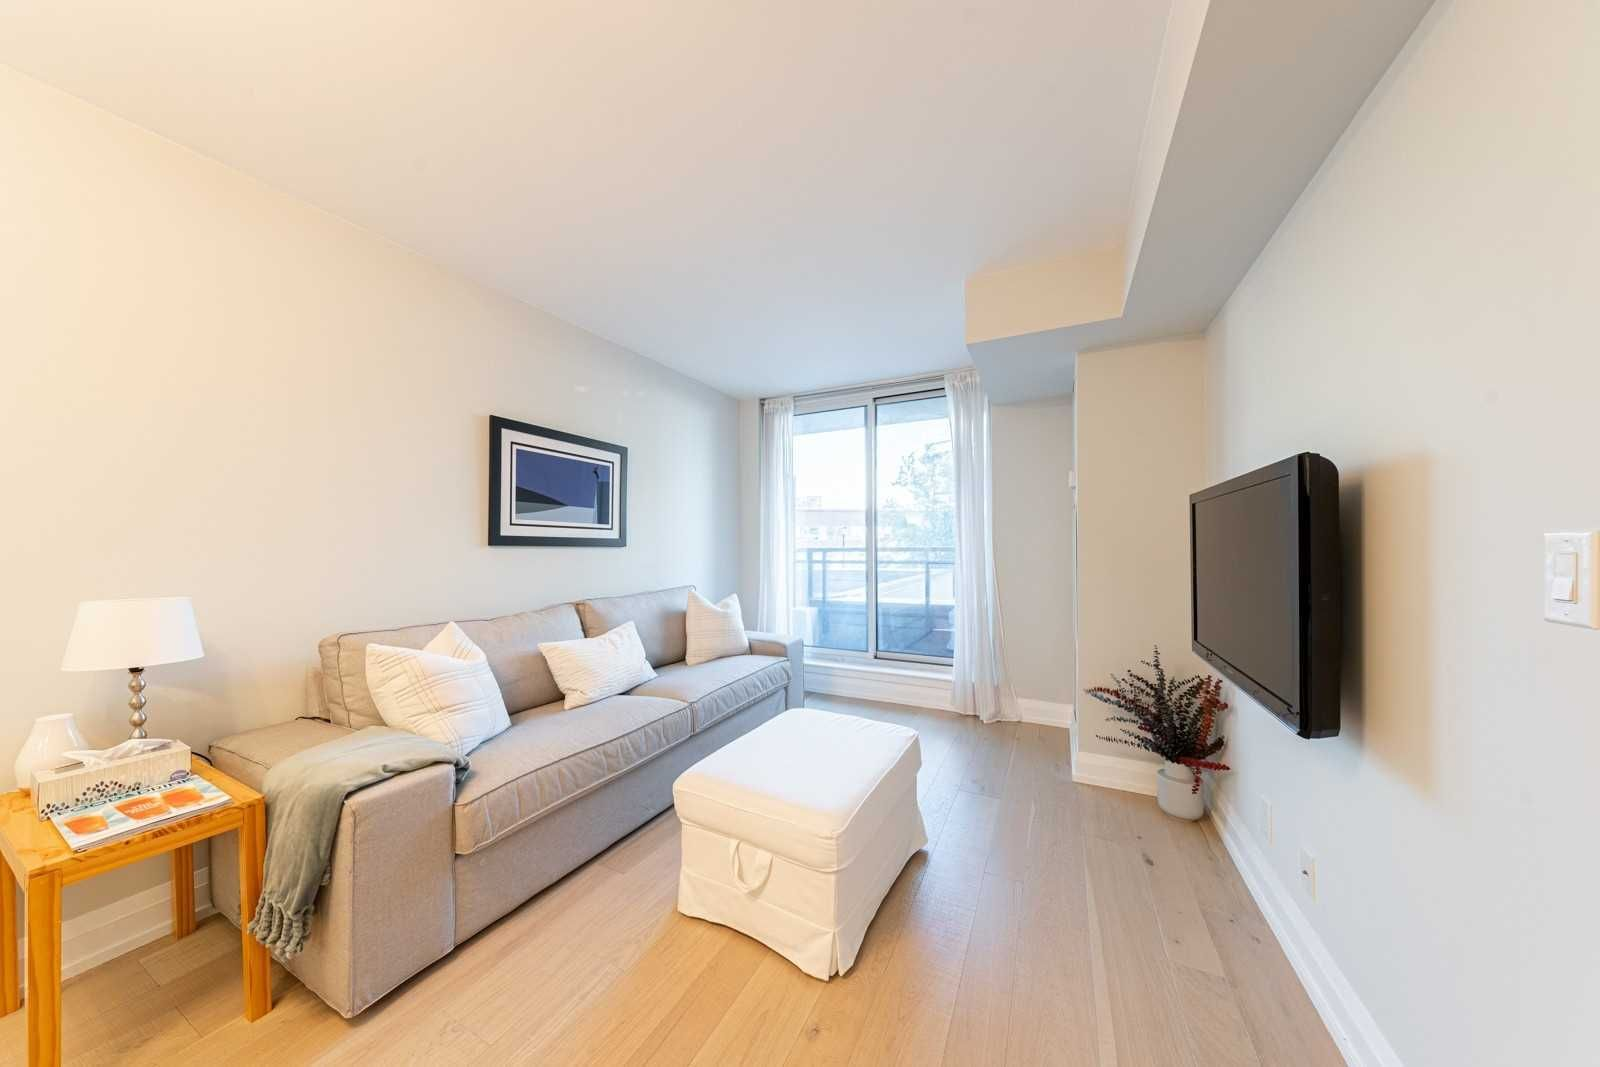 55 De Boers Dr, unit 202 for rent in York University Heights - image #1